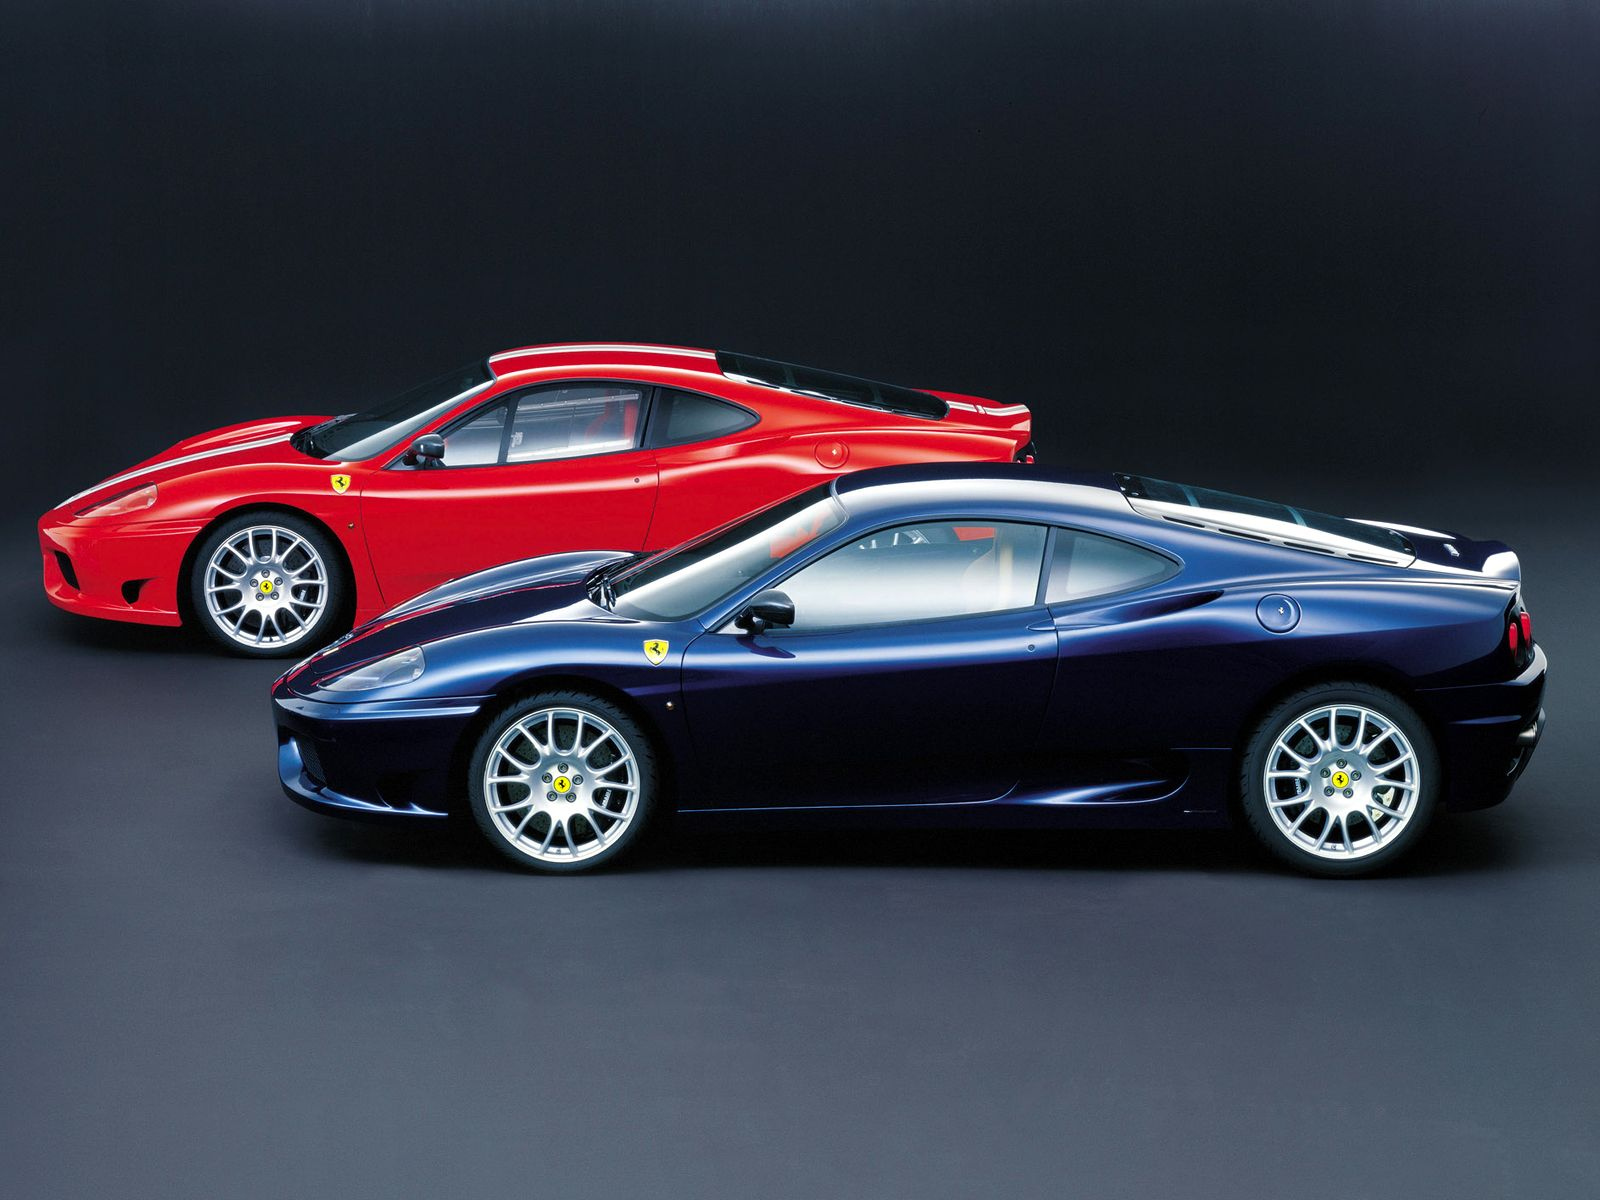 Red And Blue Ferrari 360 Modena Wallpaper Urban Art